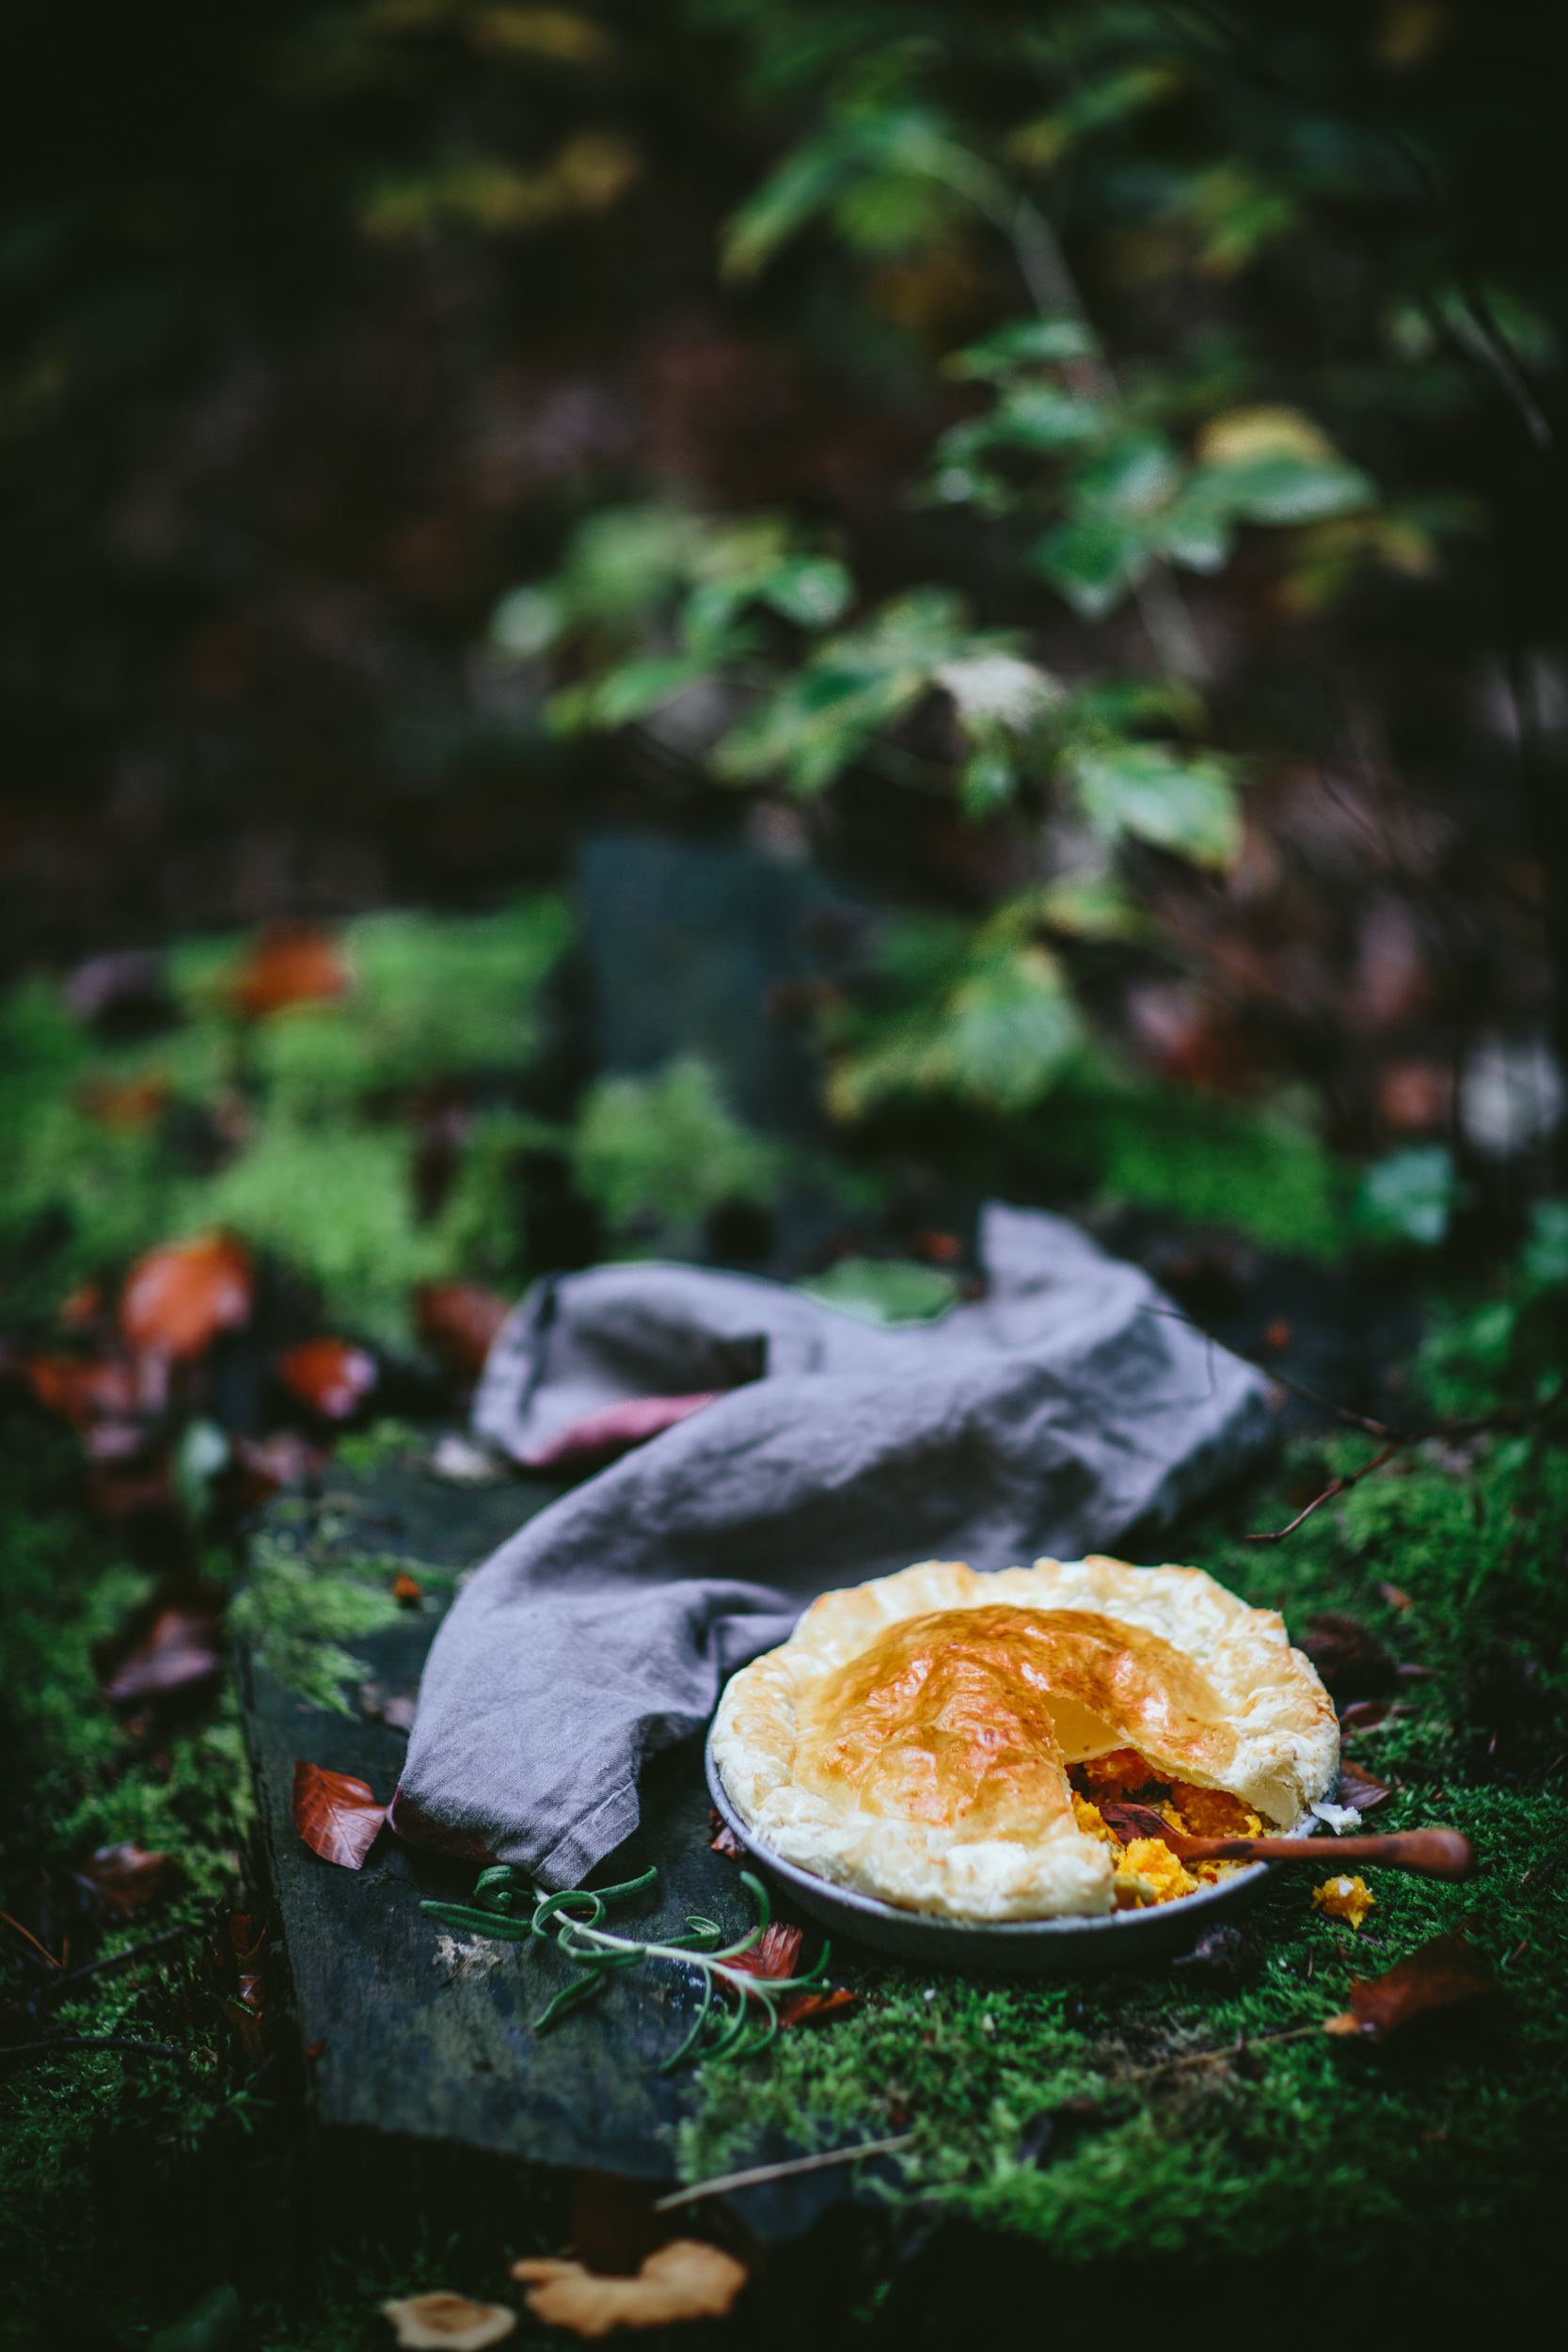 breakfast-berlin-by-eva-kosmas-flores-24